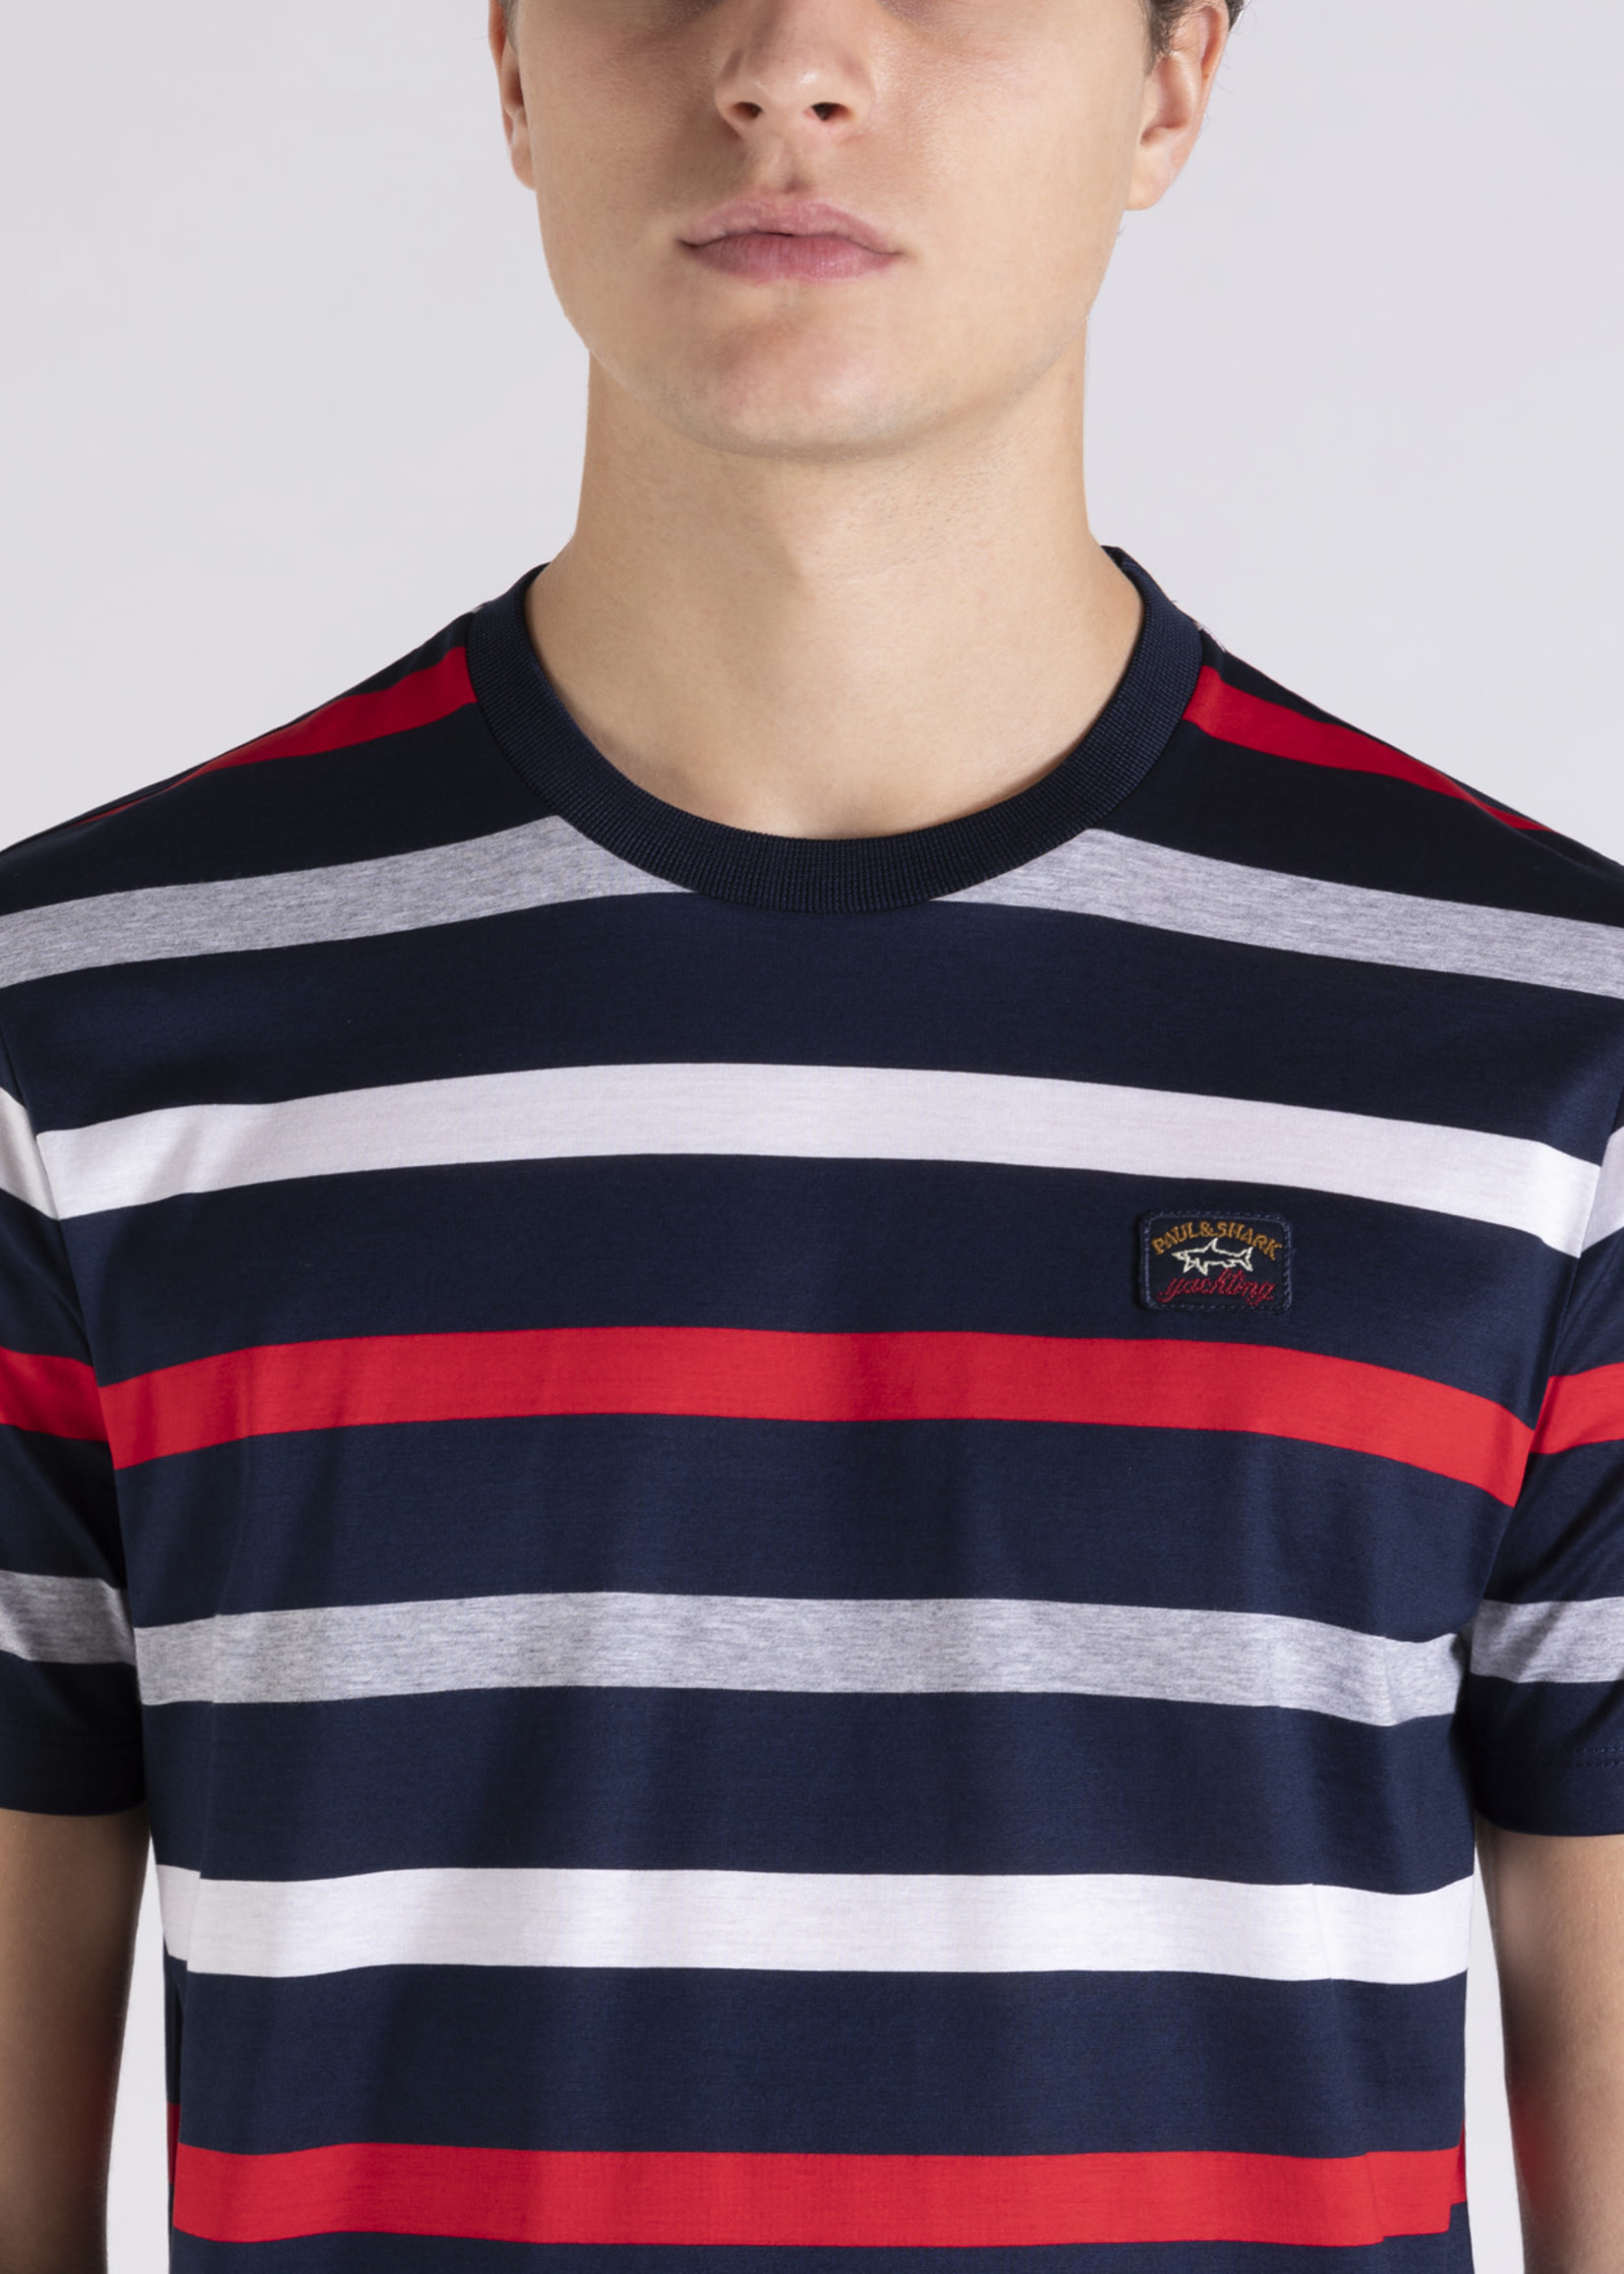 MEN'S KNITTED T-SHIRT C.W. COTTON